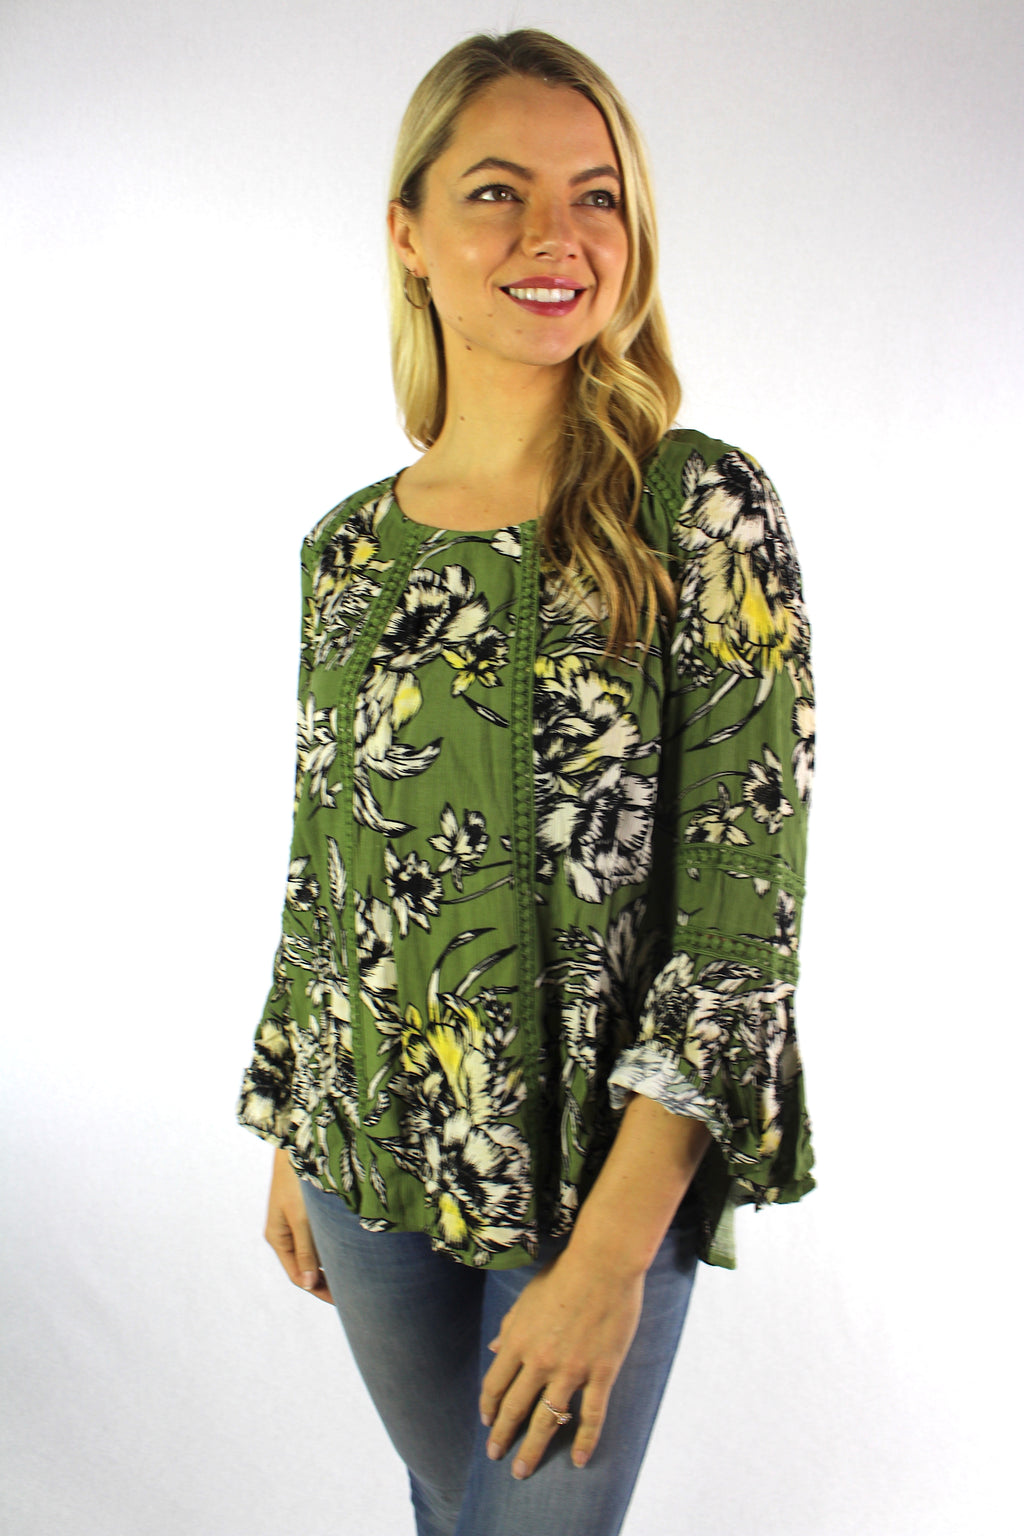 Women's 3/4th Bell Sleeve Round Neck Floral Top